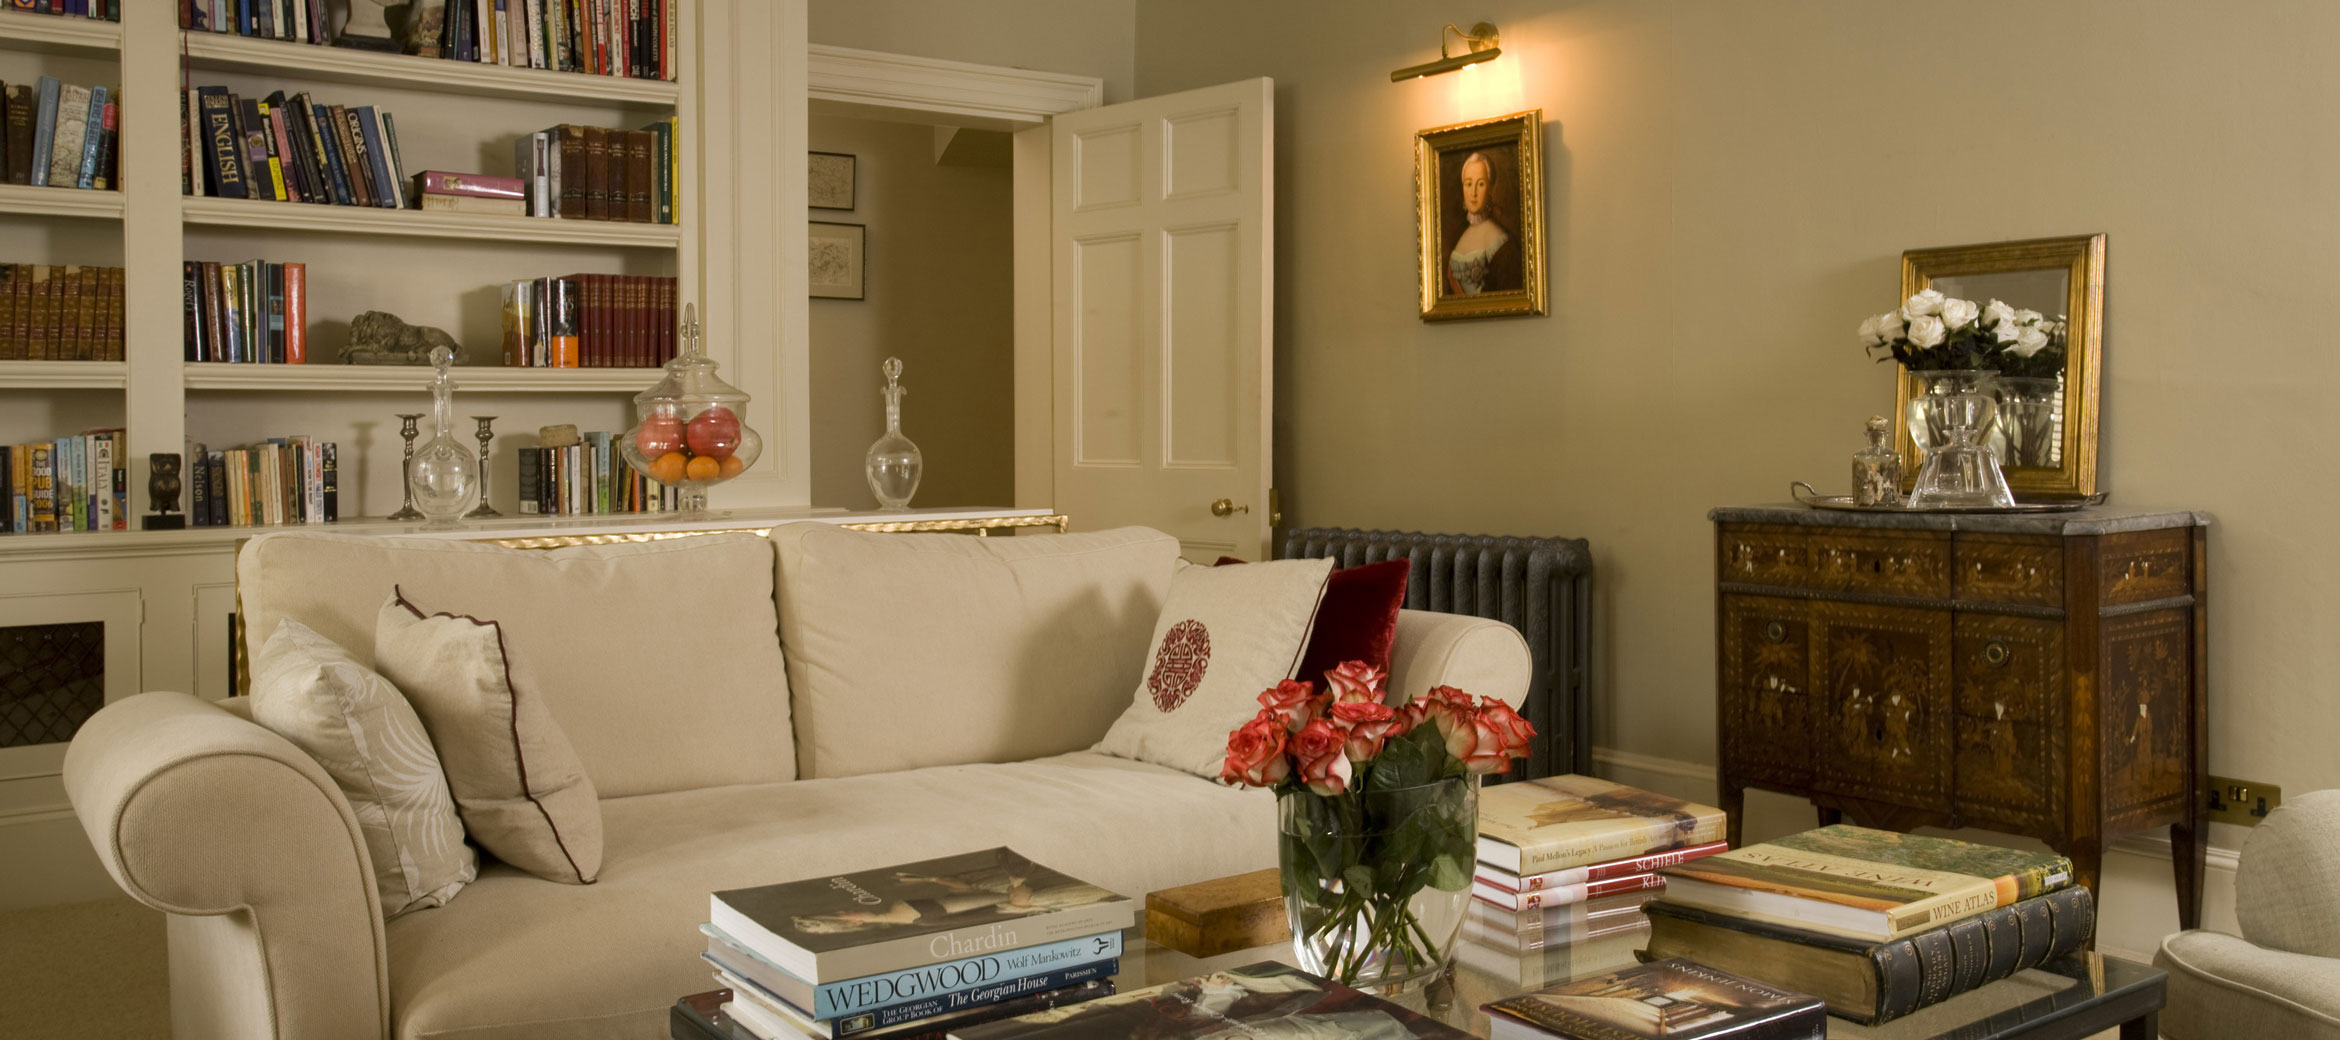 Singer-House-chipping-campden-sitting-room